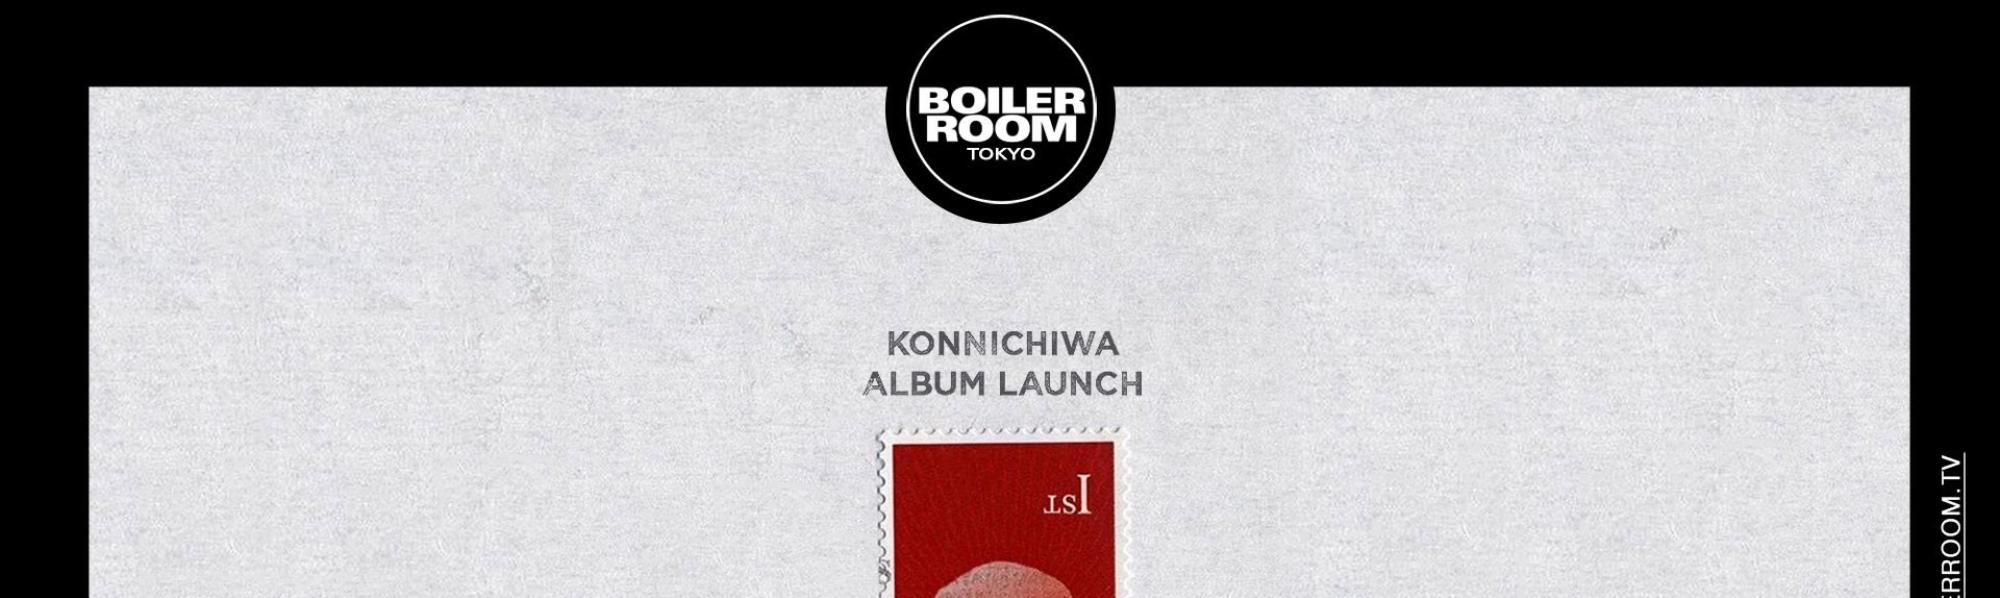 Watch Japanese Rappers Spit Grime in the Video for Skepta's 'Konnichiwa' Album Launch